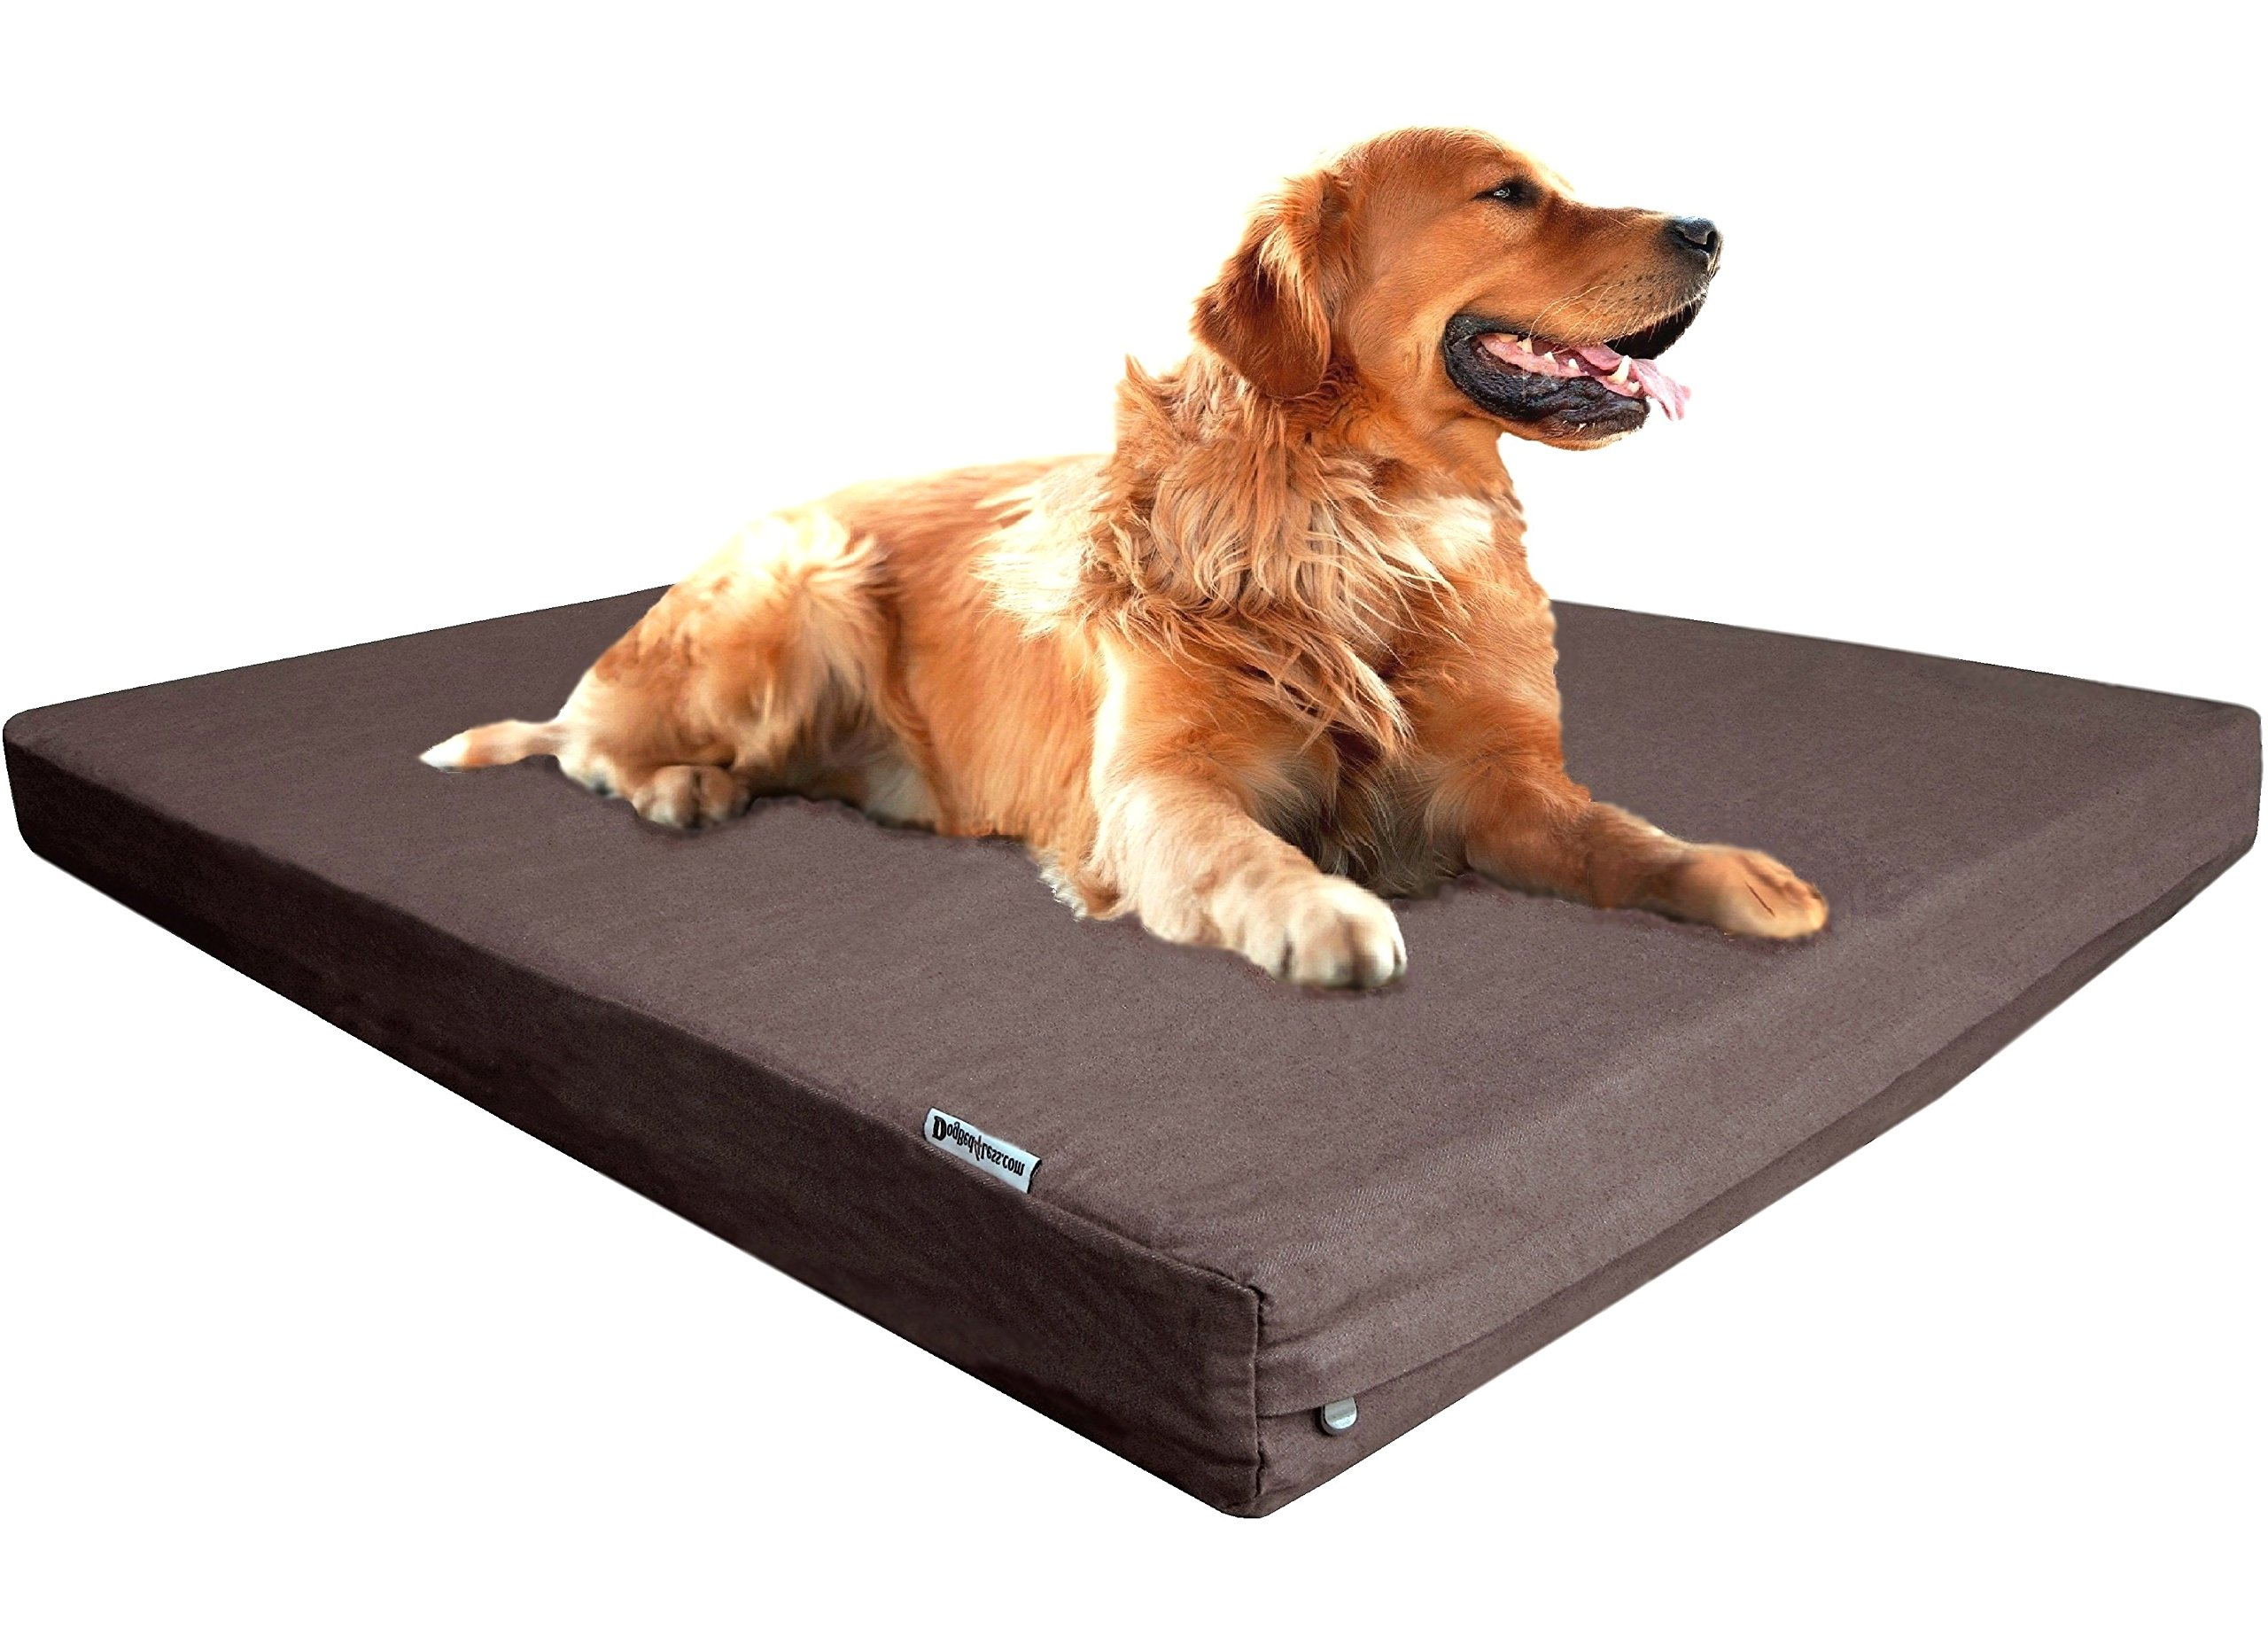 Dogbed4less Extra Large Premium Orthopedic Memory Foam Dog Bed with Durable Brown Denim Cover, Waterproof Liner and Extra Pet Bed Case, Gel Cooling 47X29X4 Pad